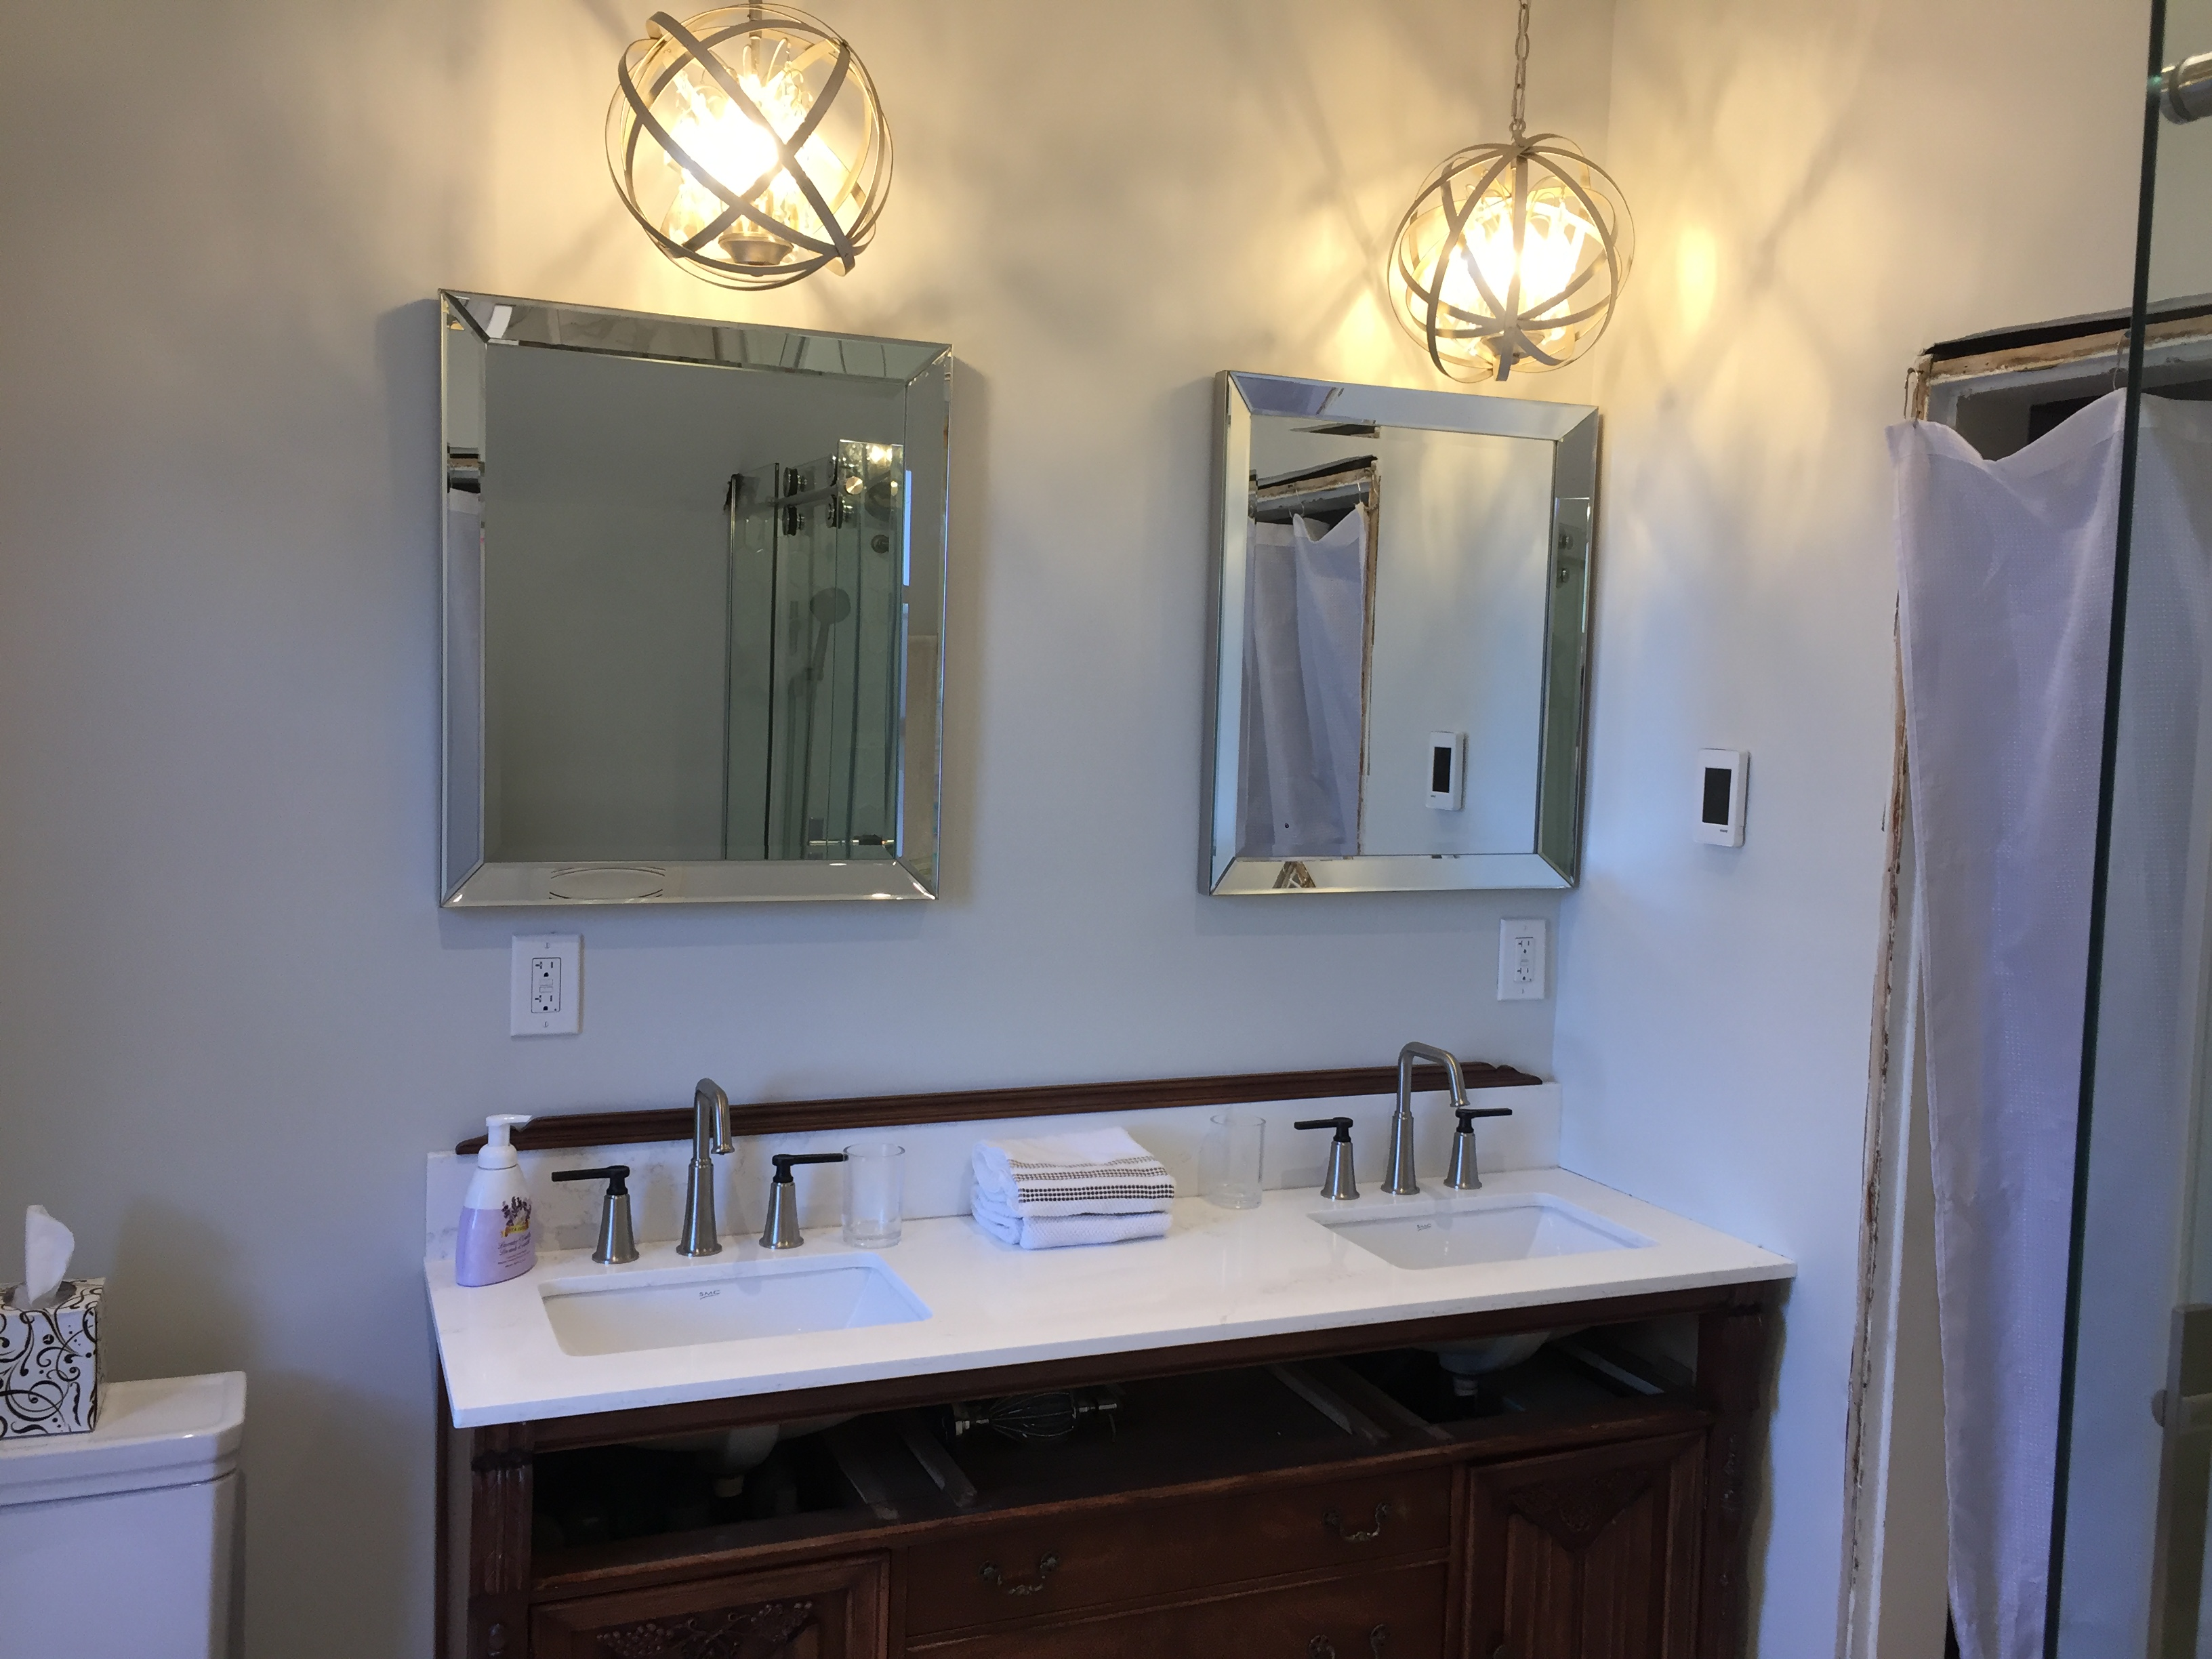 Electrician Services The Shock Doctors Wiring Outlets In Bathroom Lighting